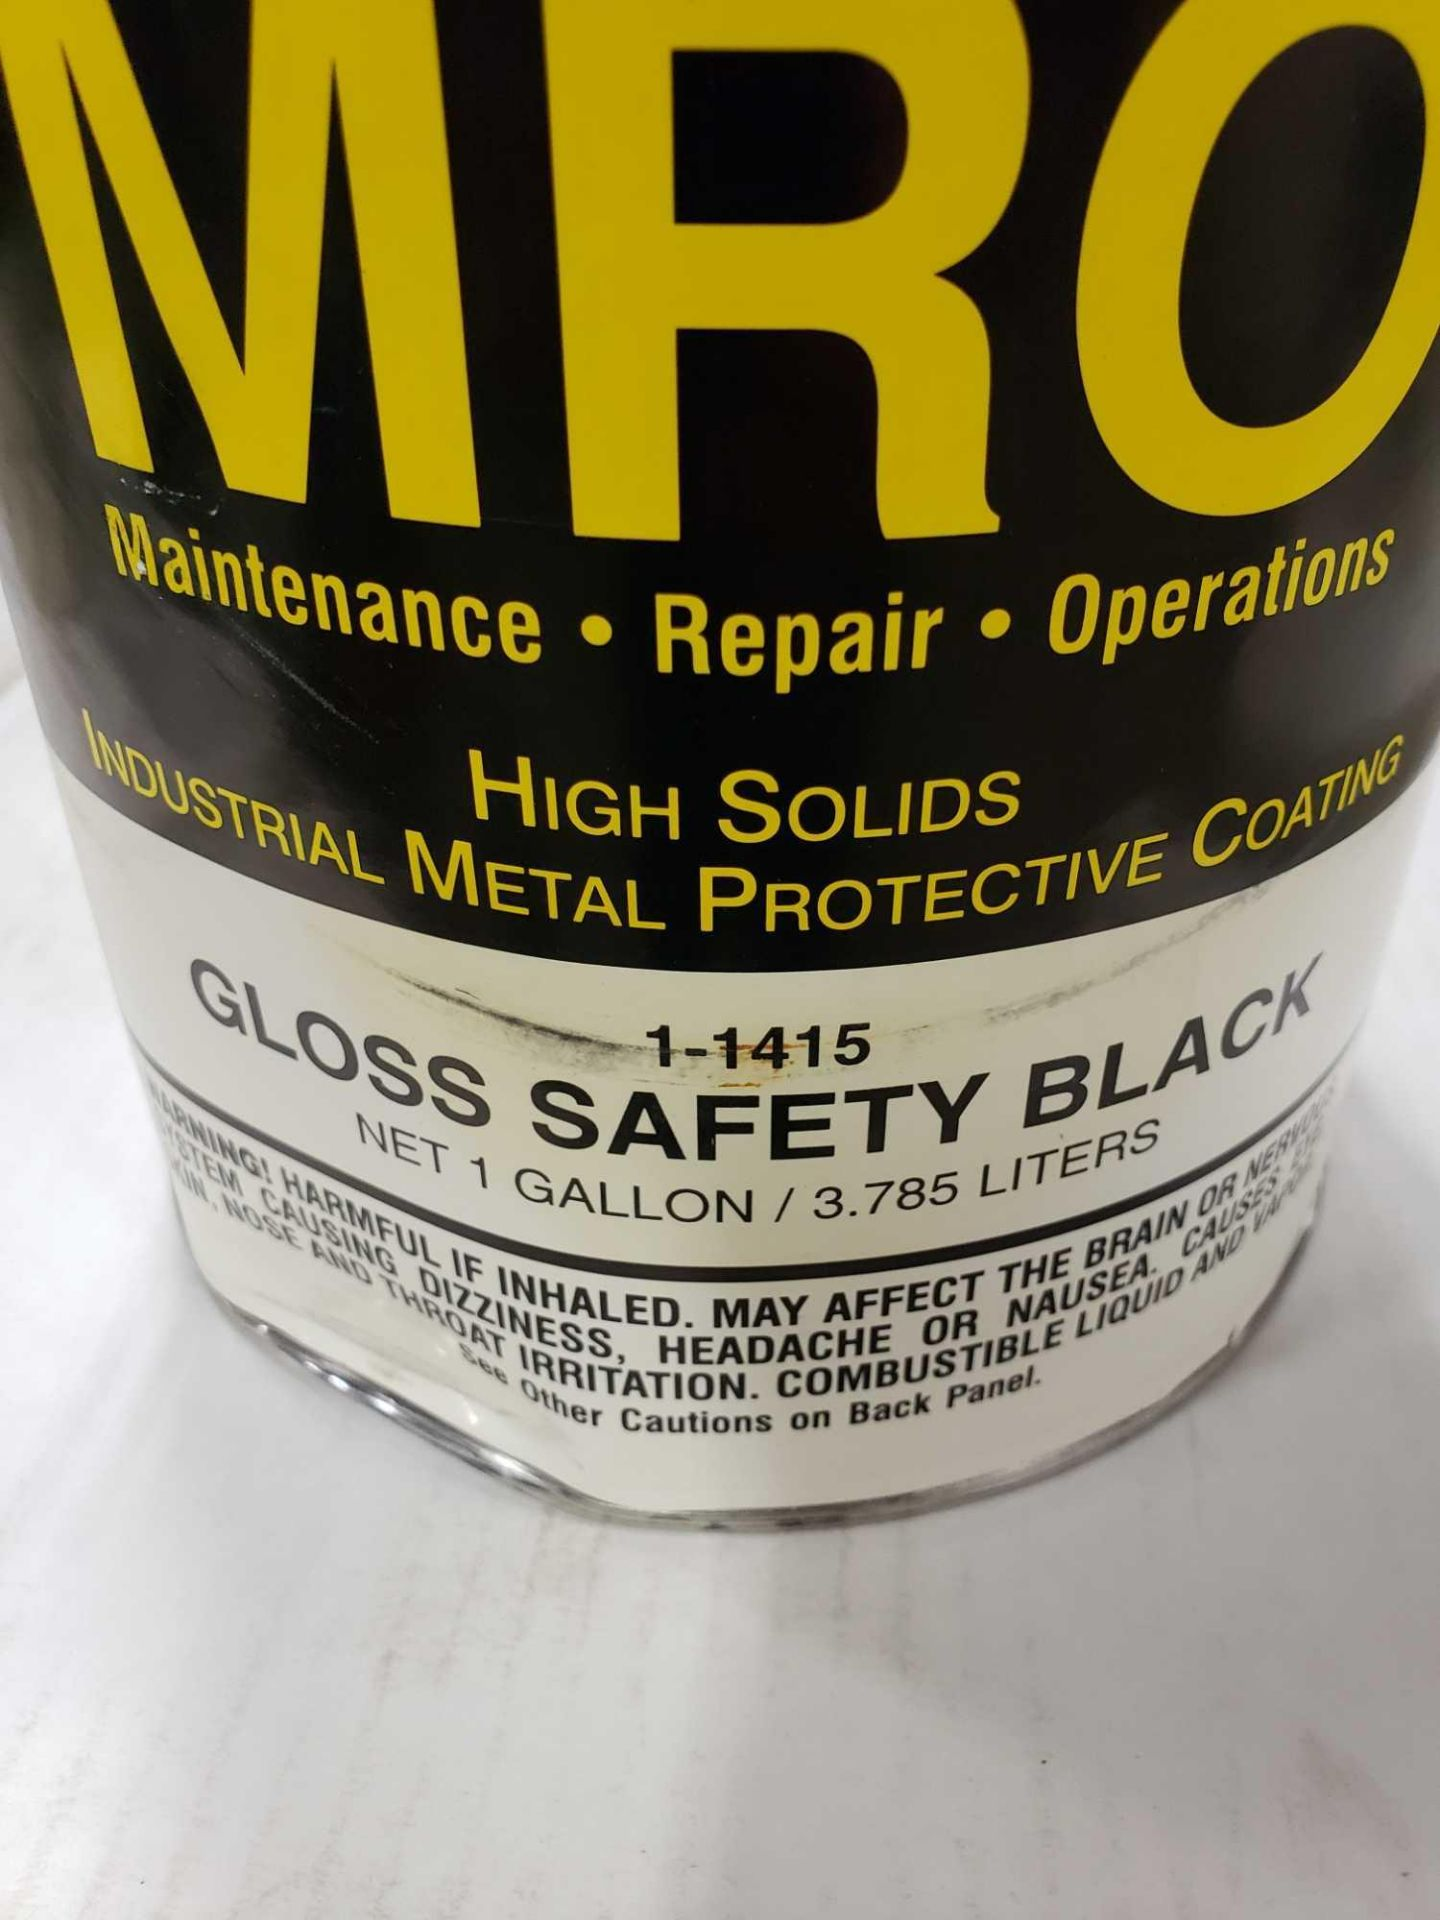 Lot 9 - Qty 4 - Seymour MRO paint Gloss Safety Black model 1-1415. New as pictured.